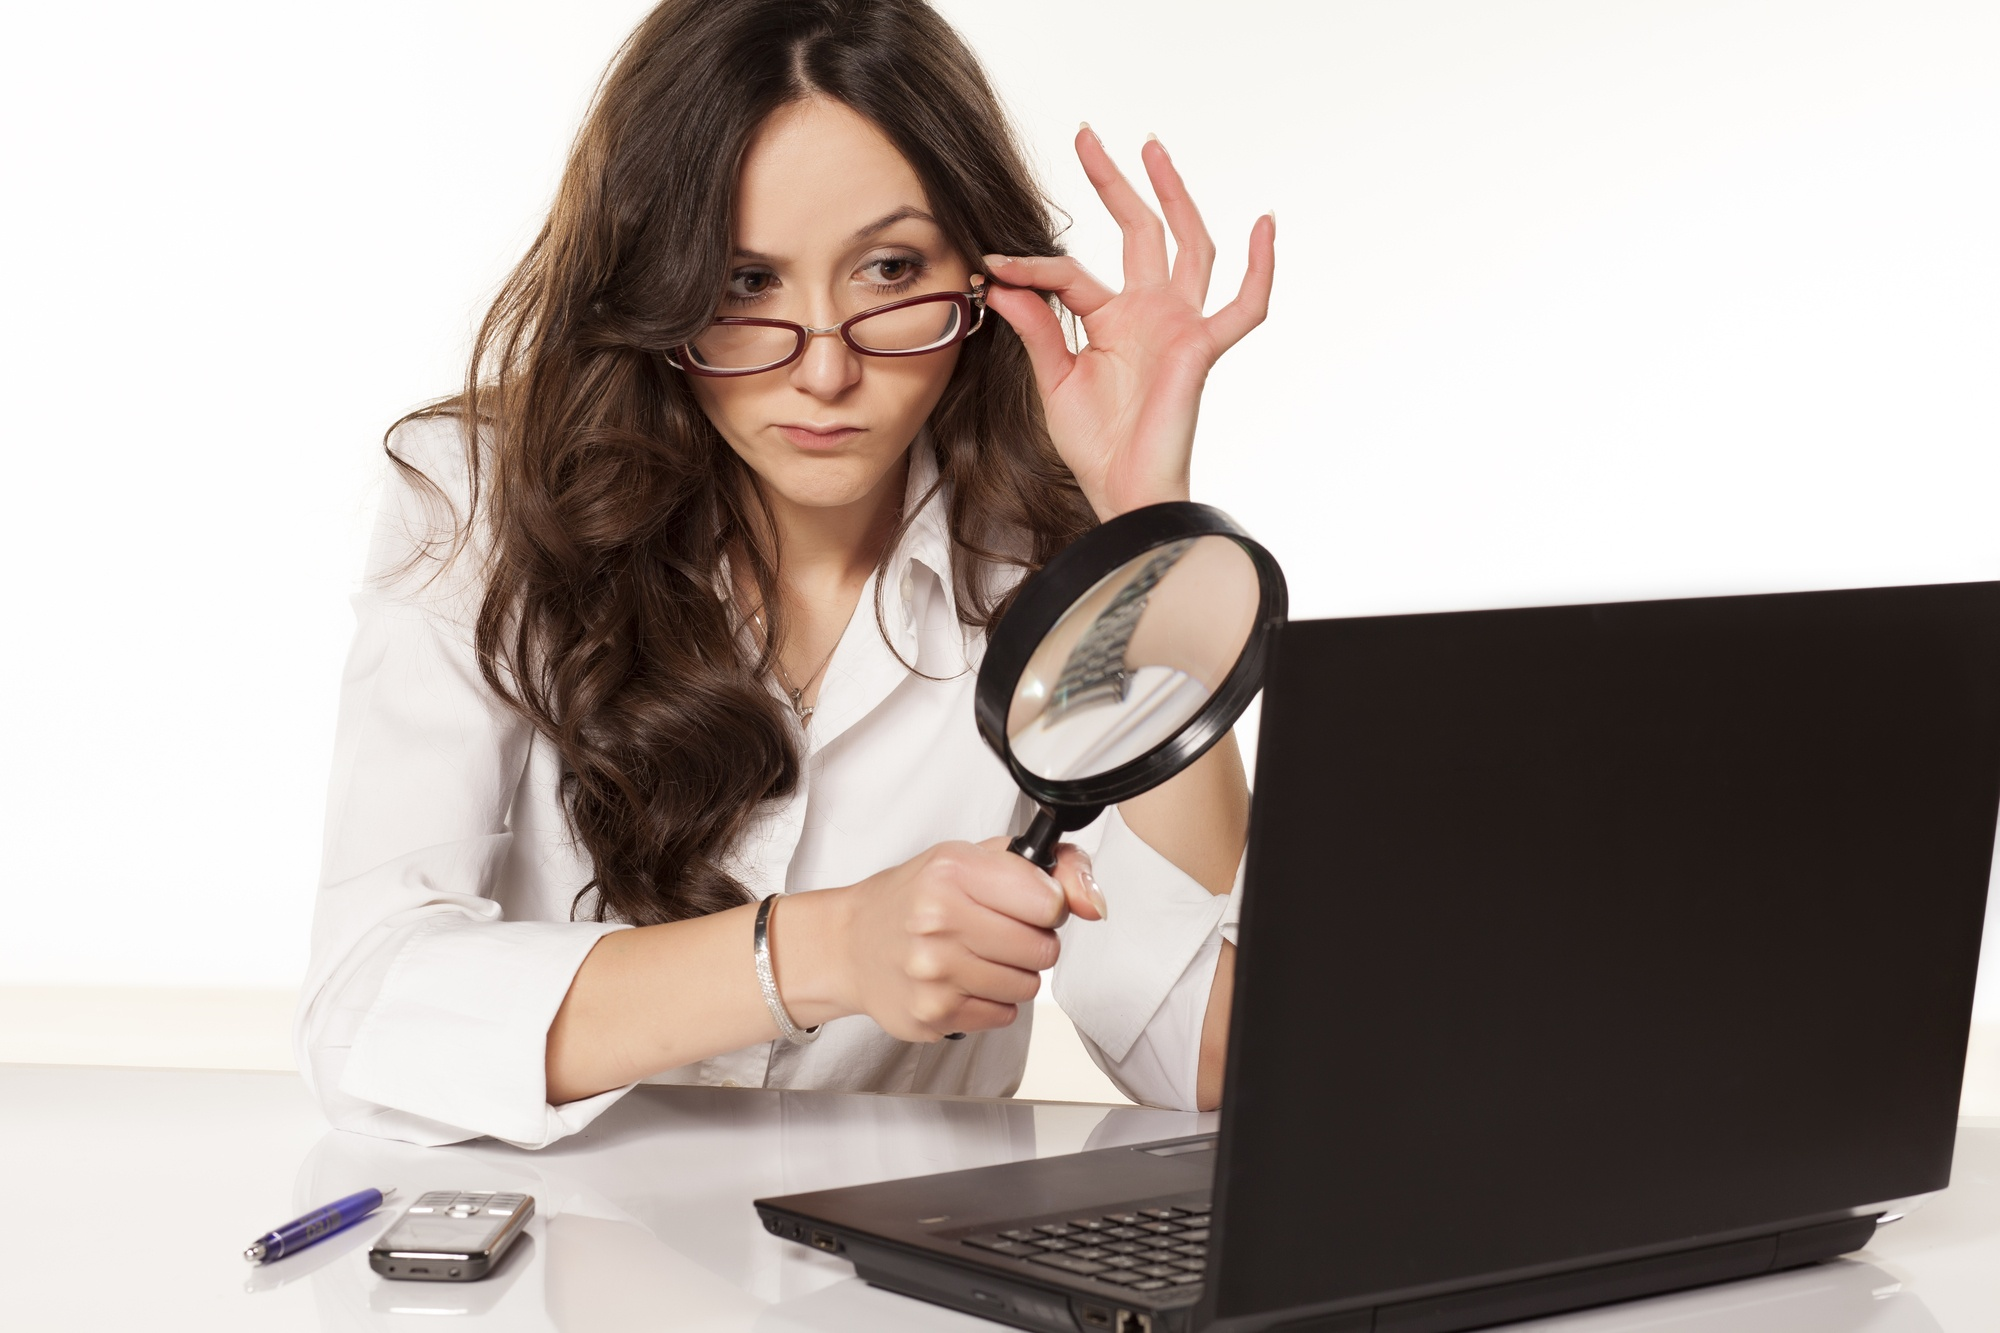 Business woman examining the results of her fully managed IT services